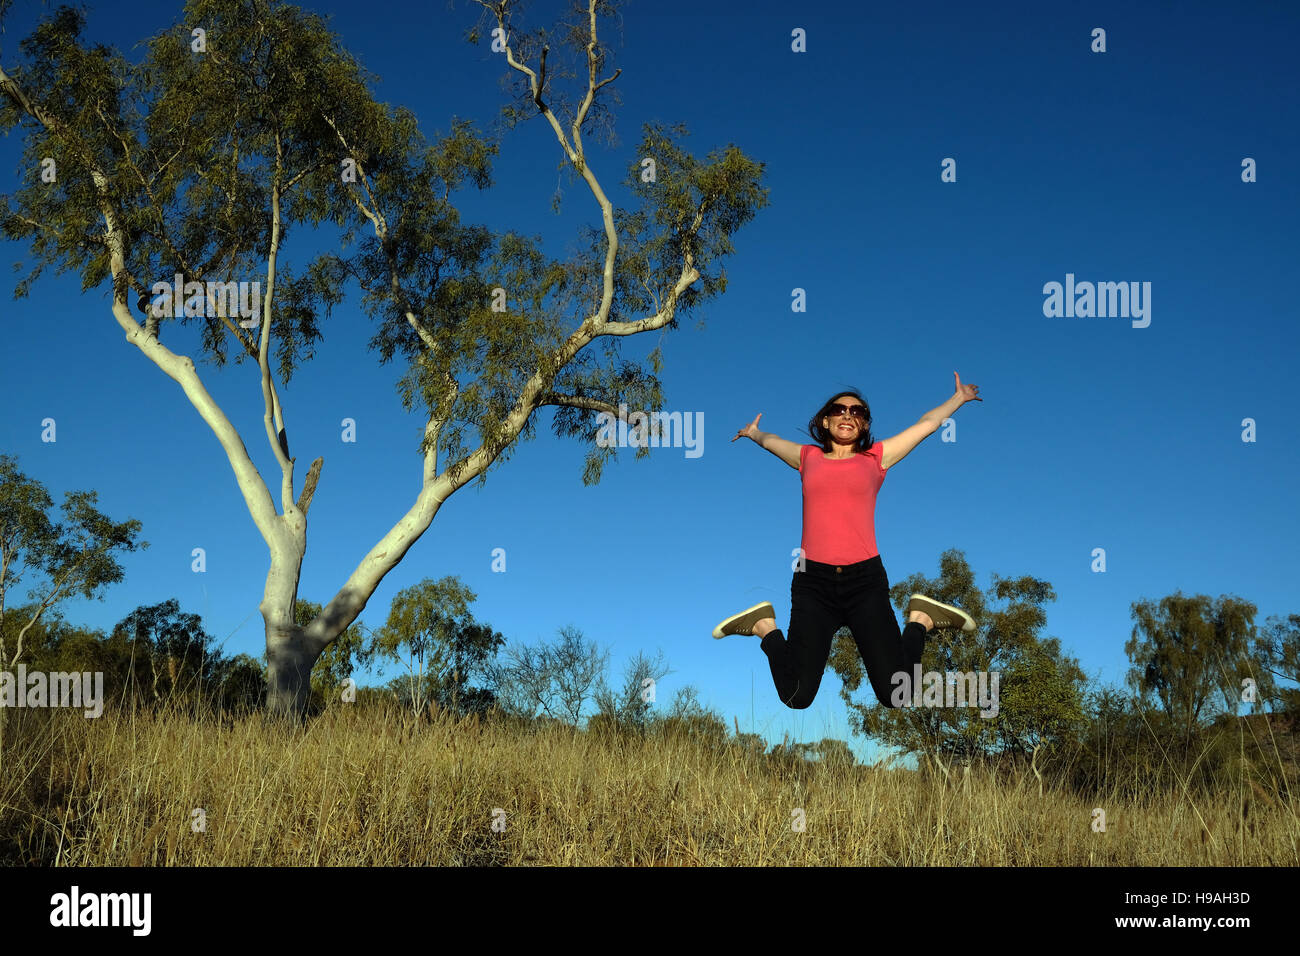 A woman leaps during an exercise in Alice Springs, the MacDonnell Ranges, Northern Territory, Central Australia - Stock Image